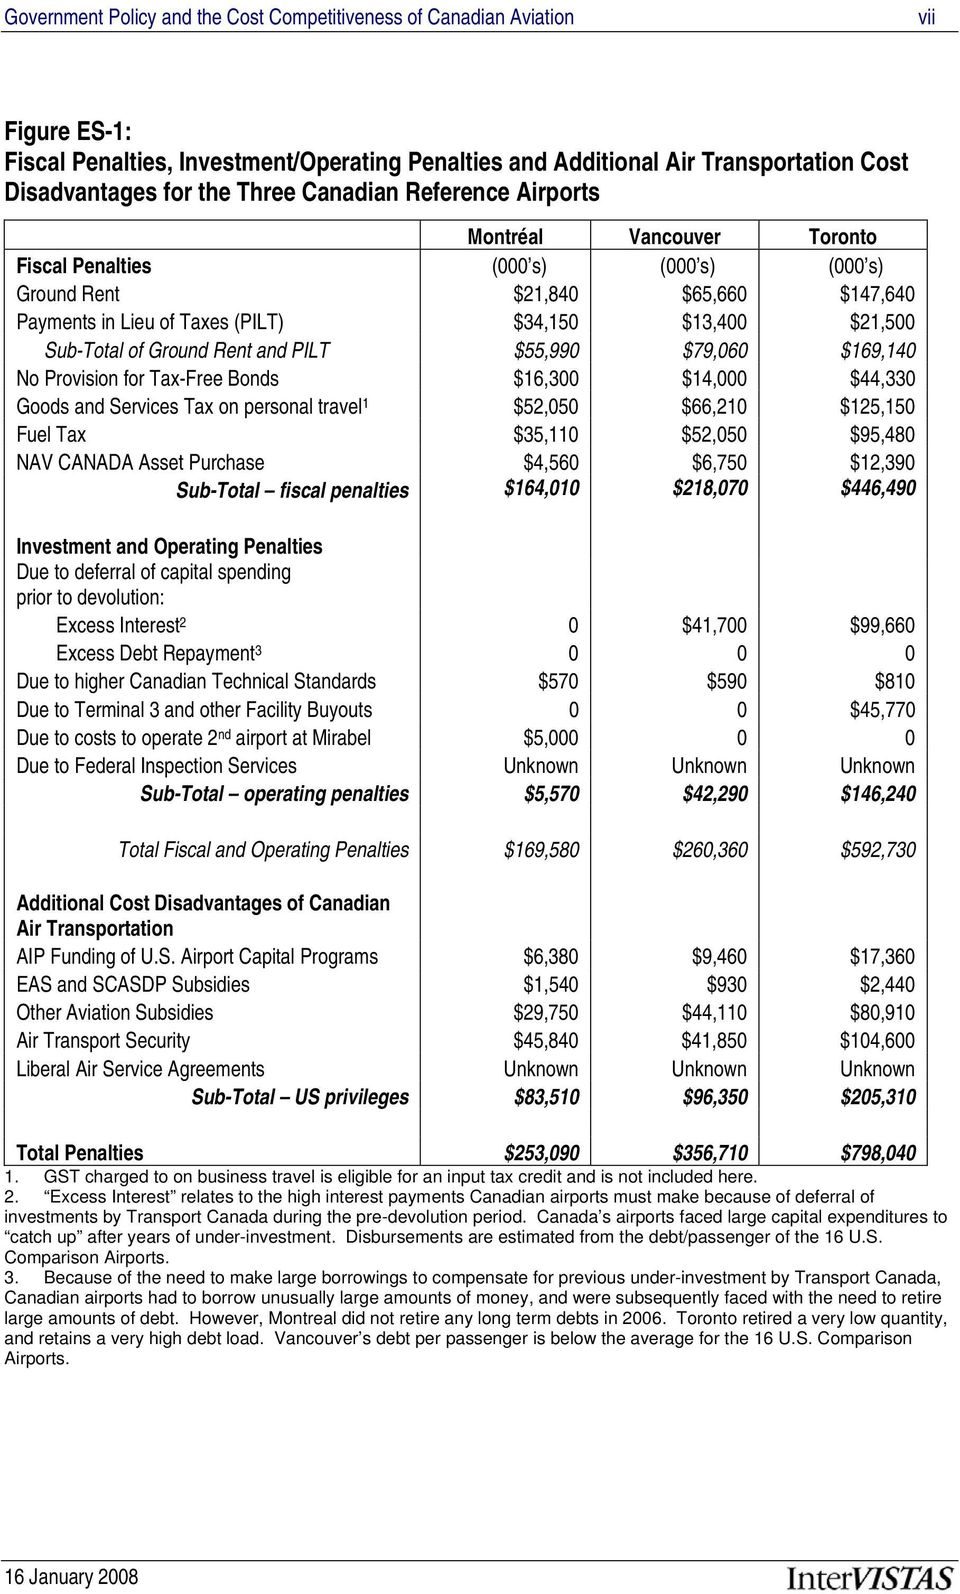 Sub-Total of Ground Rent and PILT $55,990 $79,060 $169,140 No Provision for Tax-Free Bonds $16,300 $14,000 $44,330 Goods and Services Tax on personal travel 1 $52,050 $66,210 $125,150 Fuel Tax